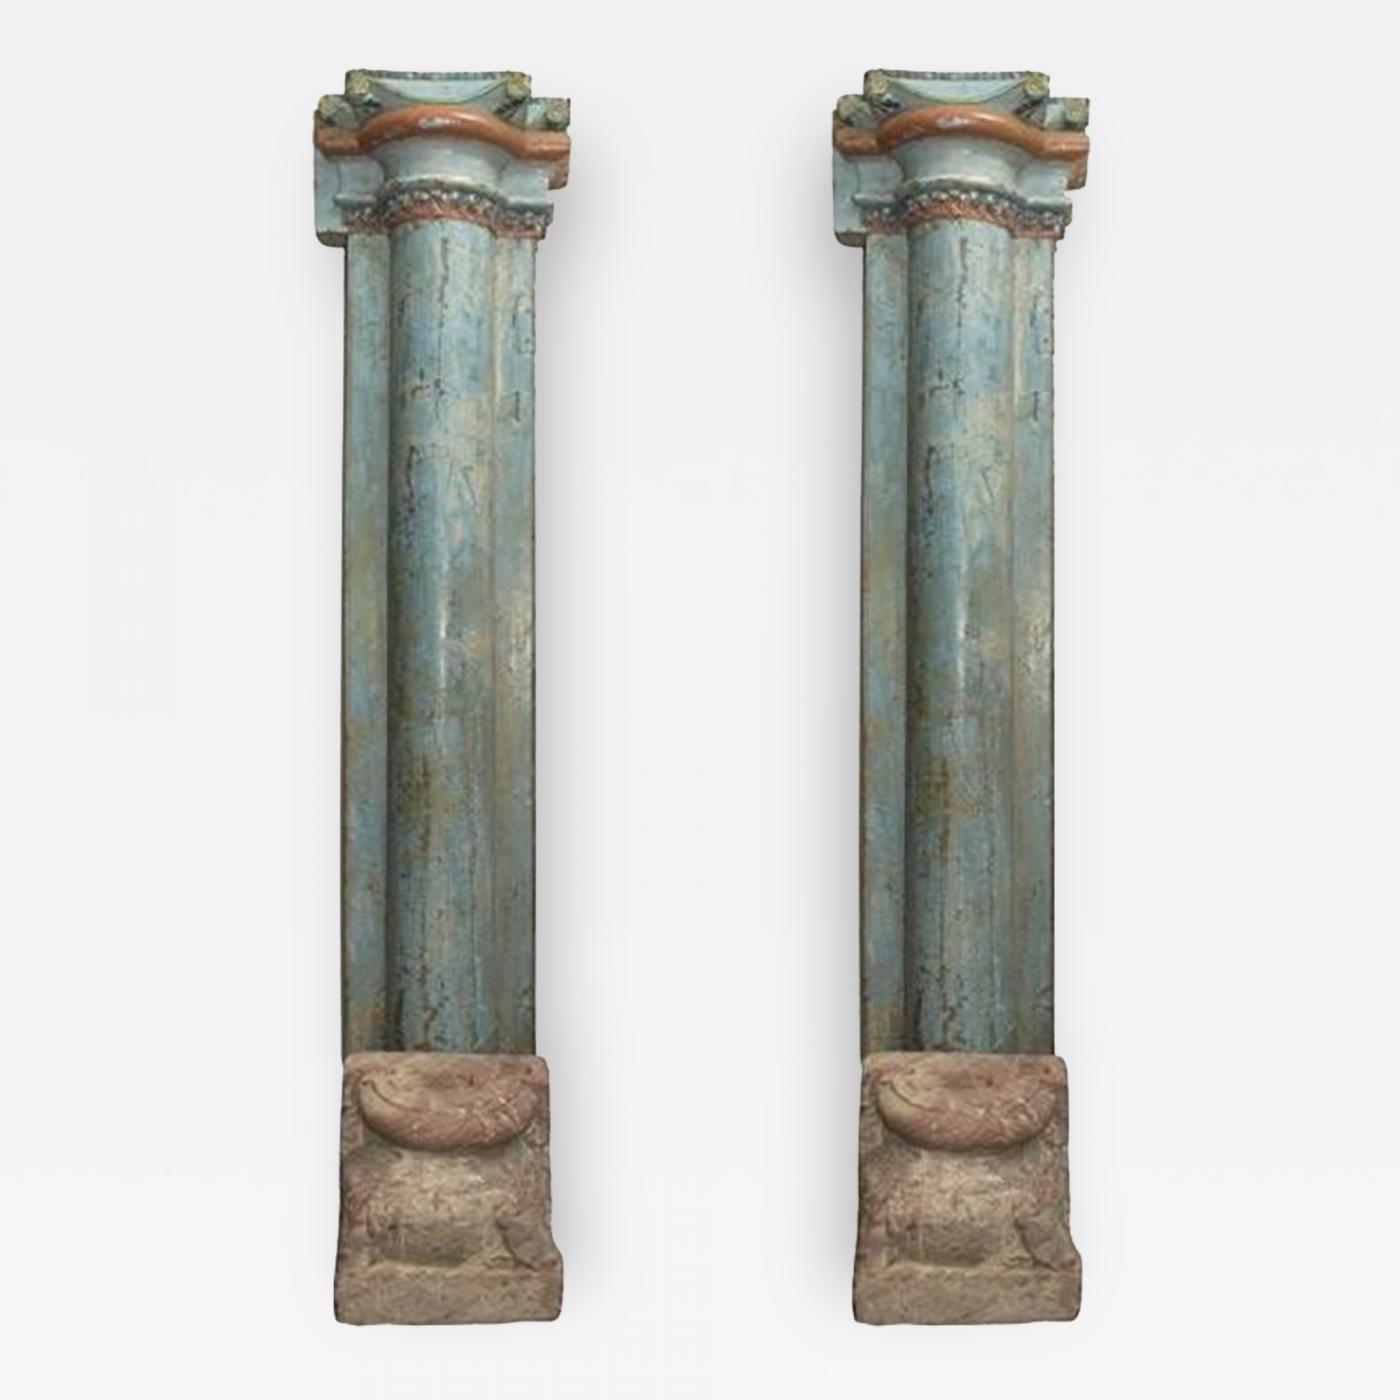 Round Wood Columns : A pair of half round wood columns with stone bases sold in